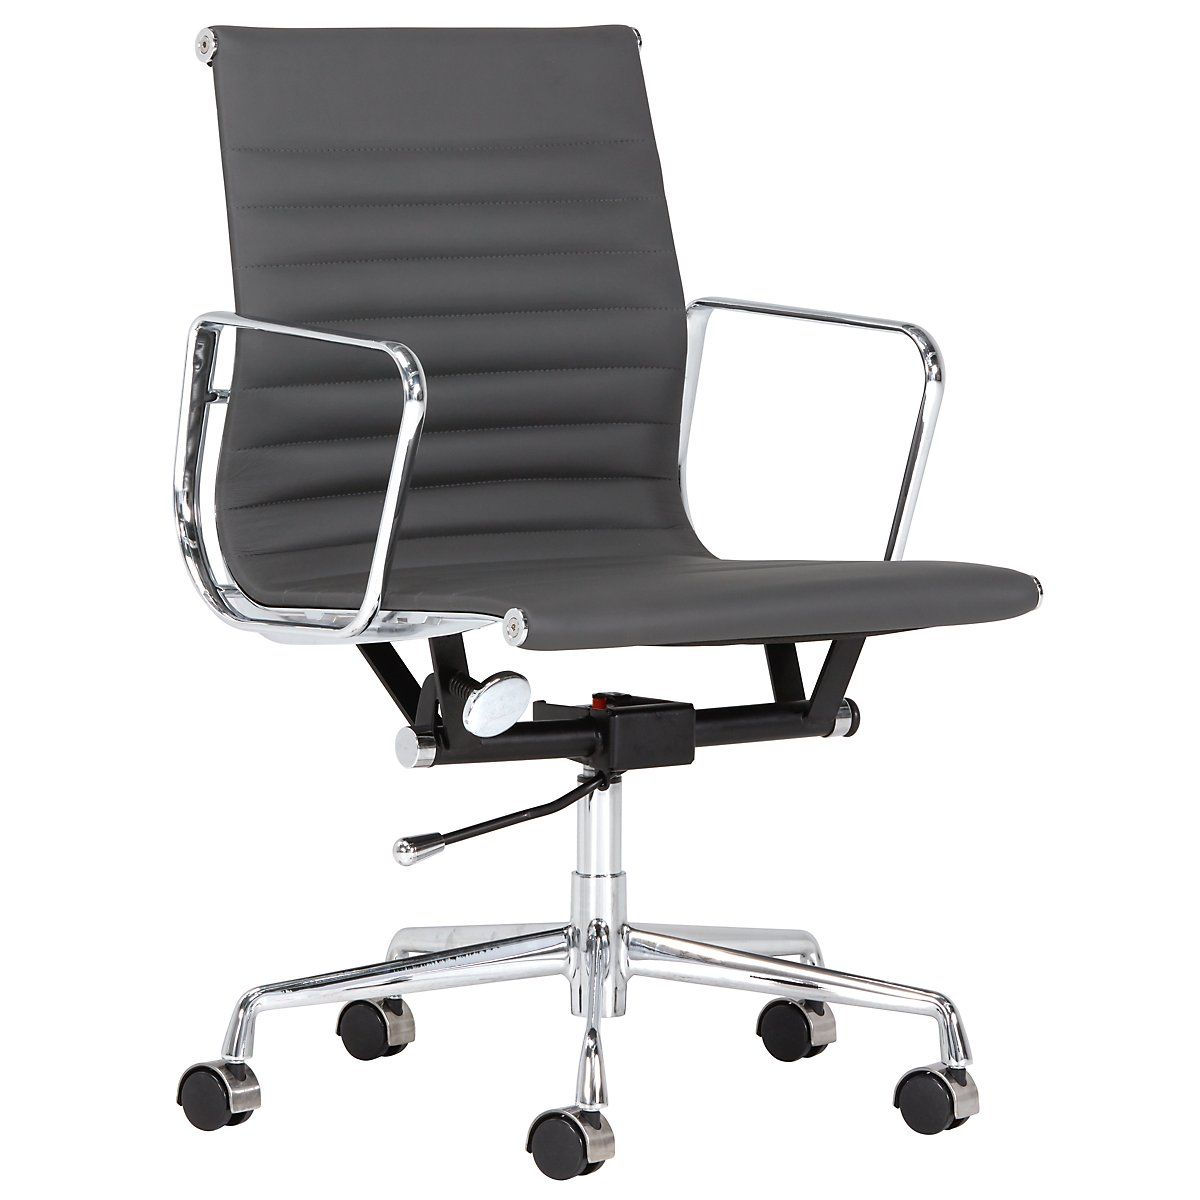 Mateo Gray Desk Chair